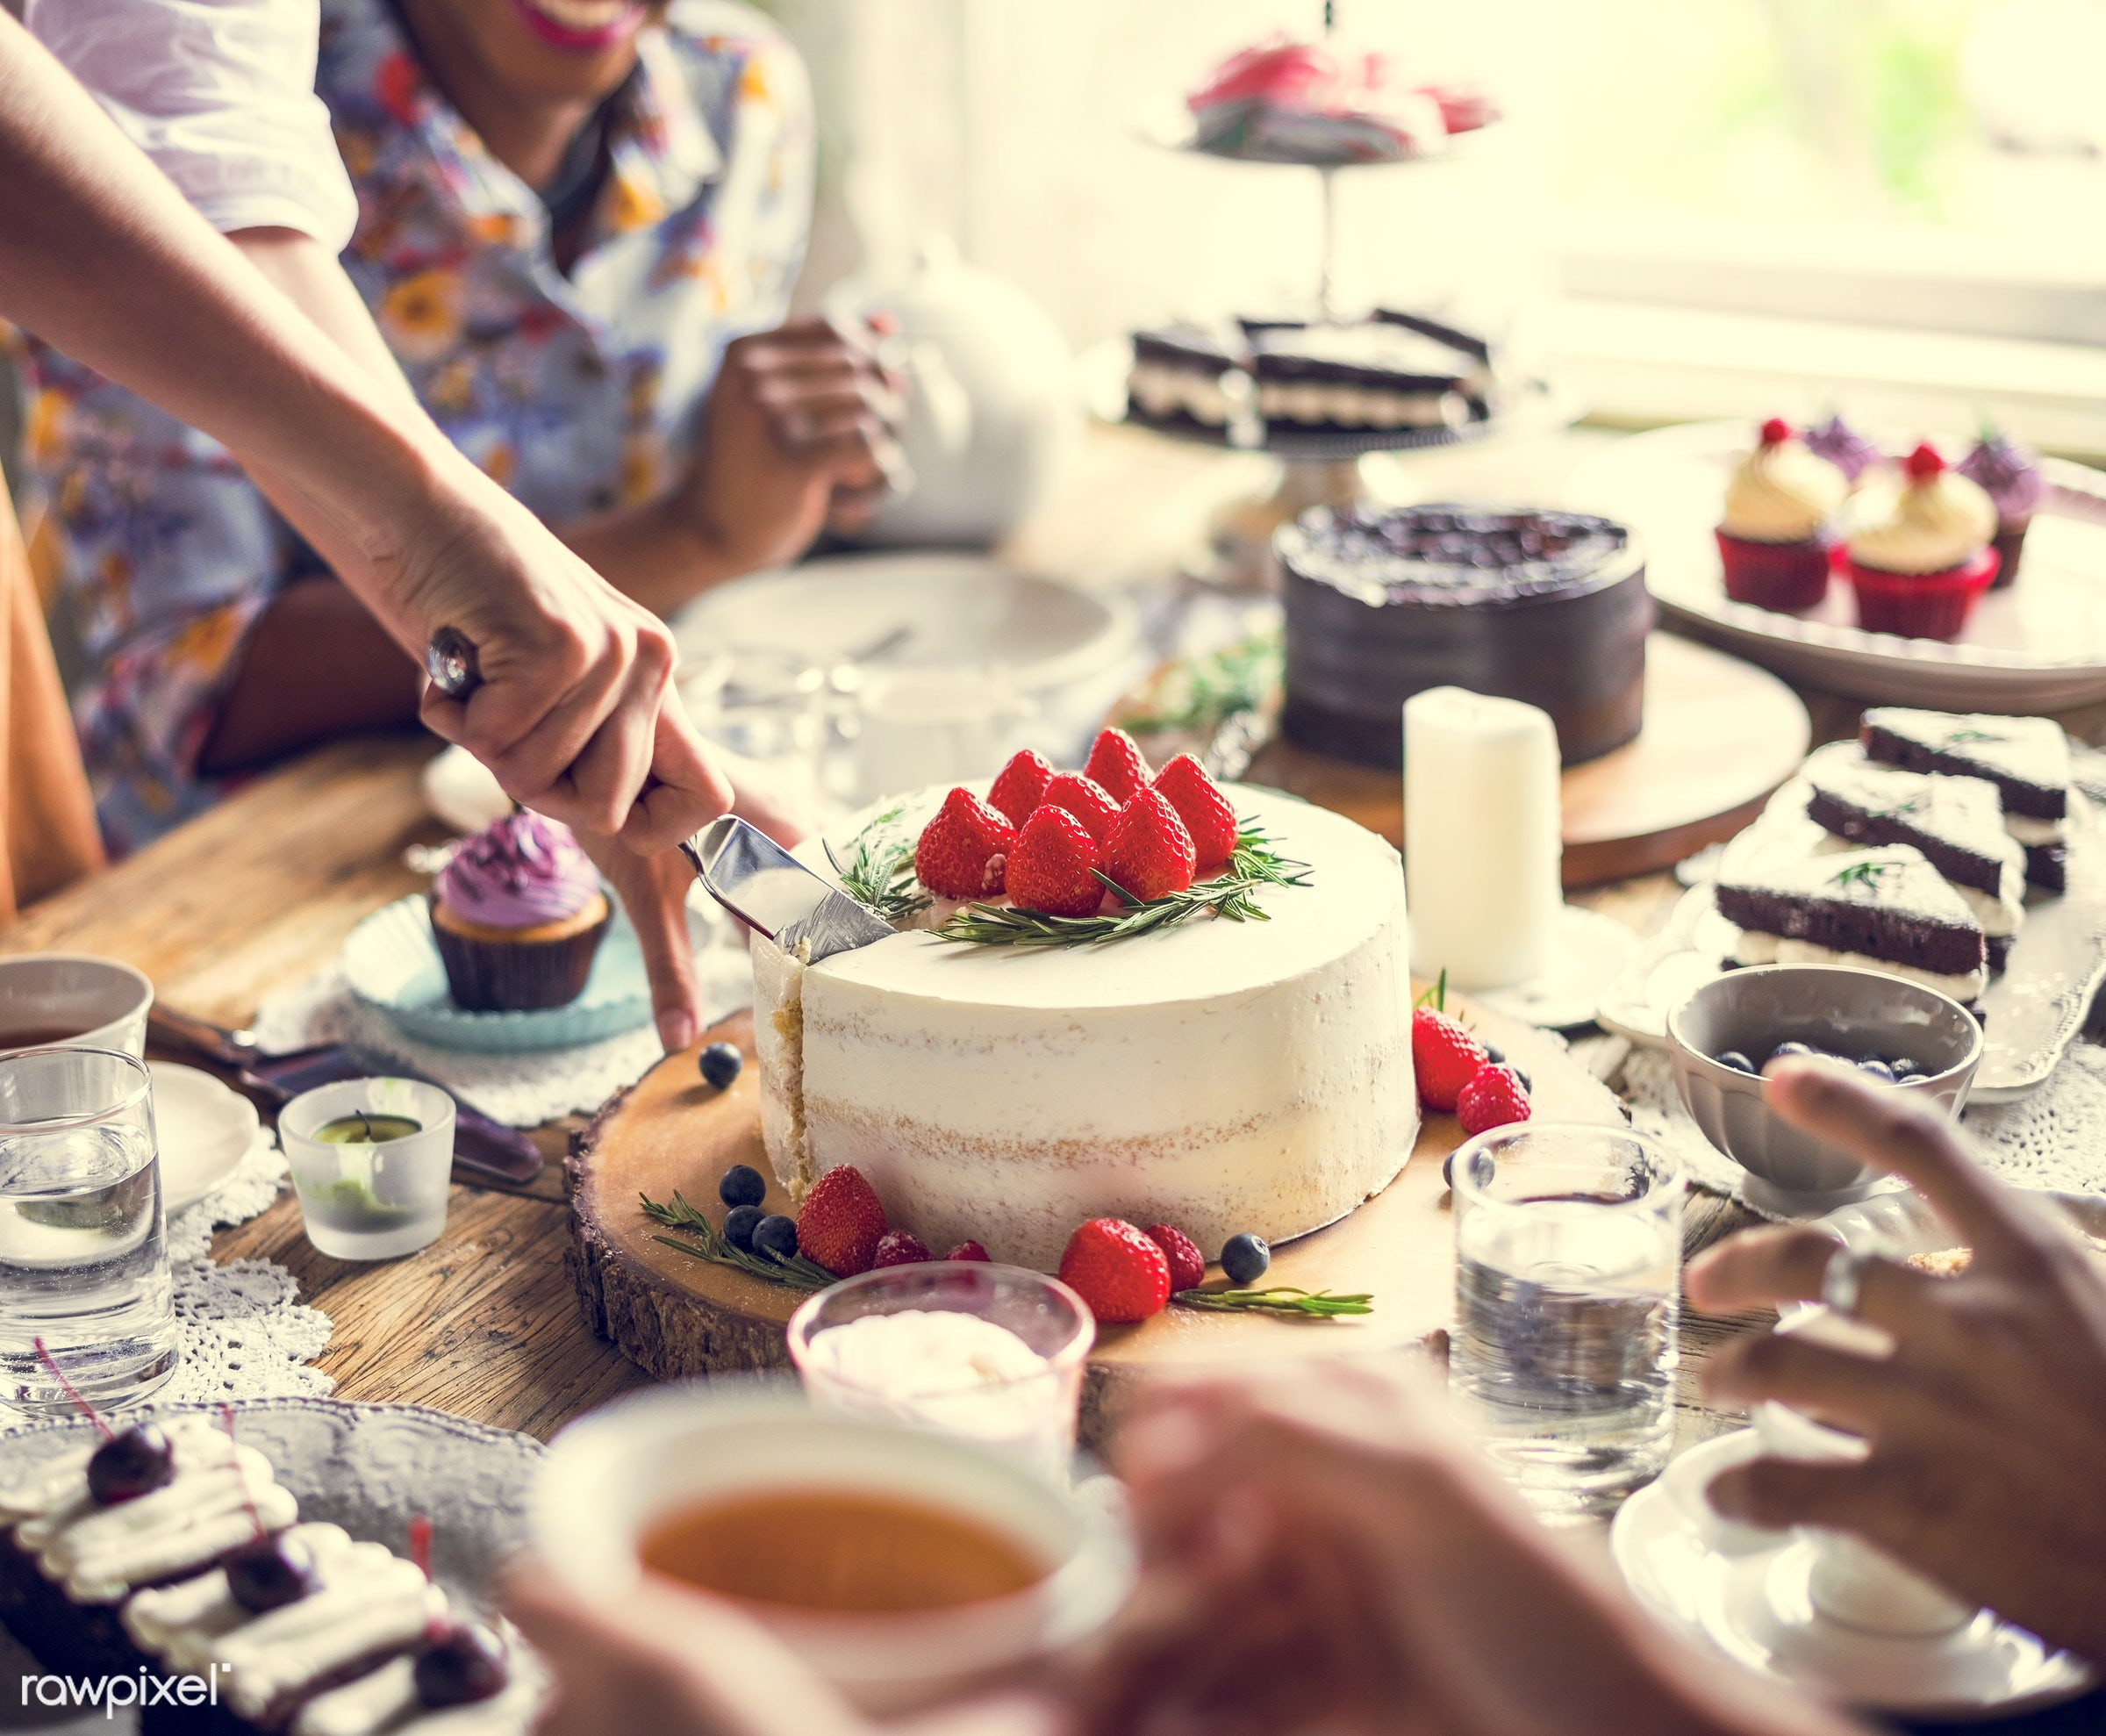 dish, person, recipe, tea, party, people, together, tea party, friends, bakery, frosting, gather, event, woman, gathering,...